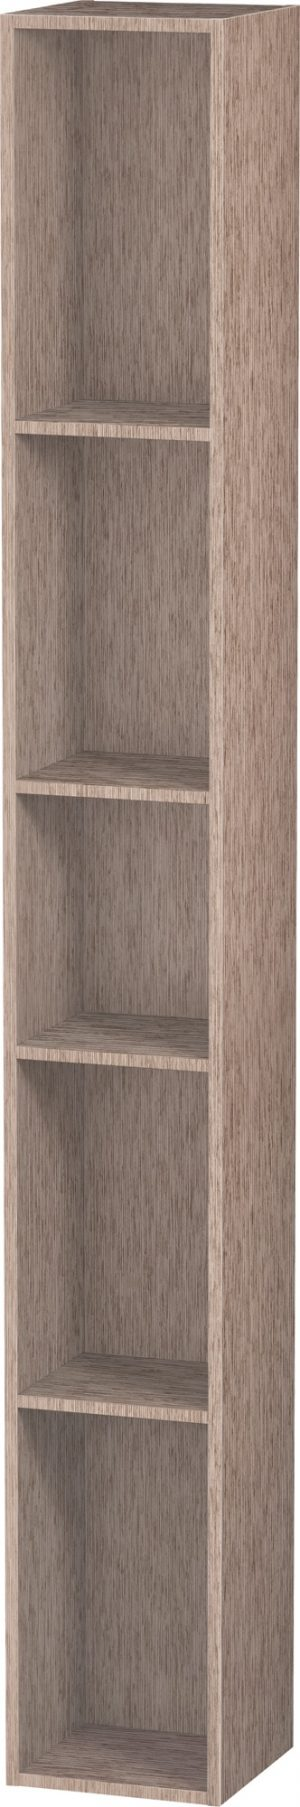 Duravit - LC Shelf 5 Compartments 180x180x1400mm - Cashmere Oak